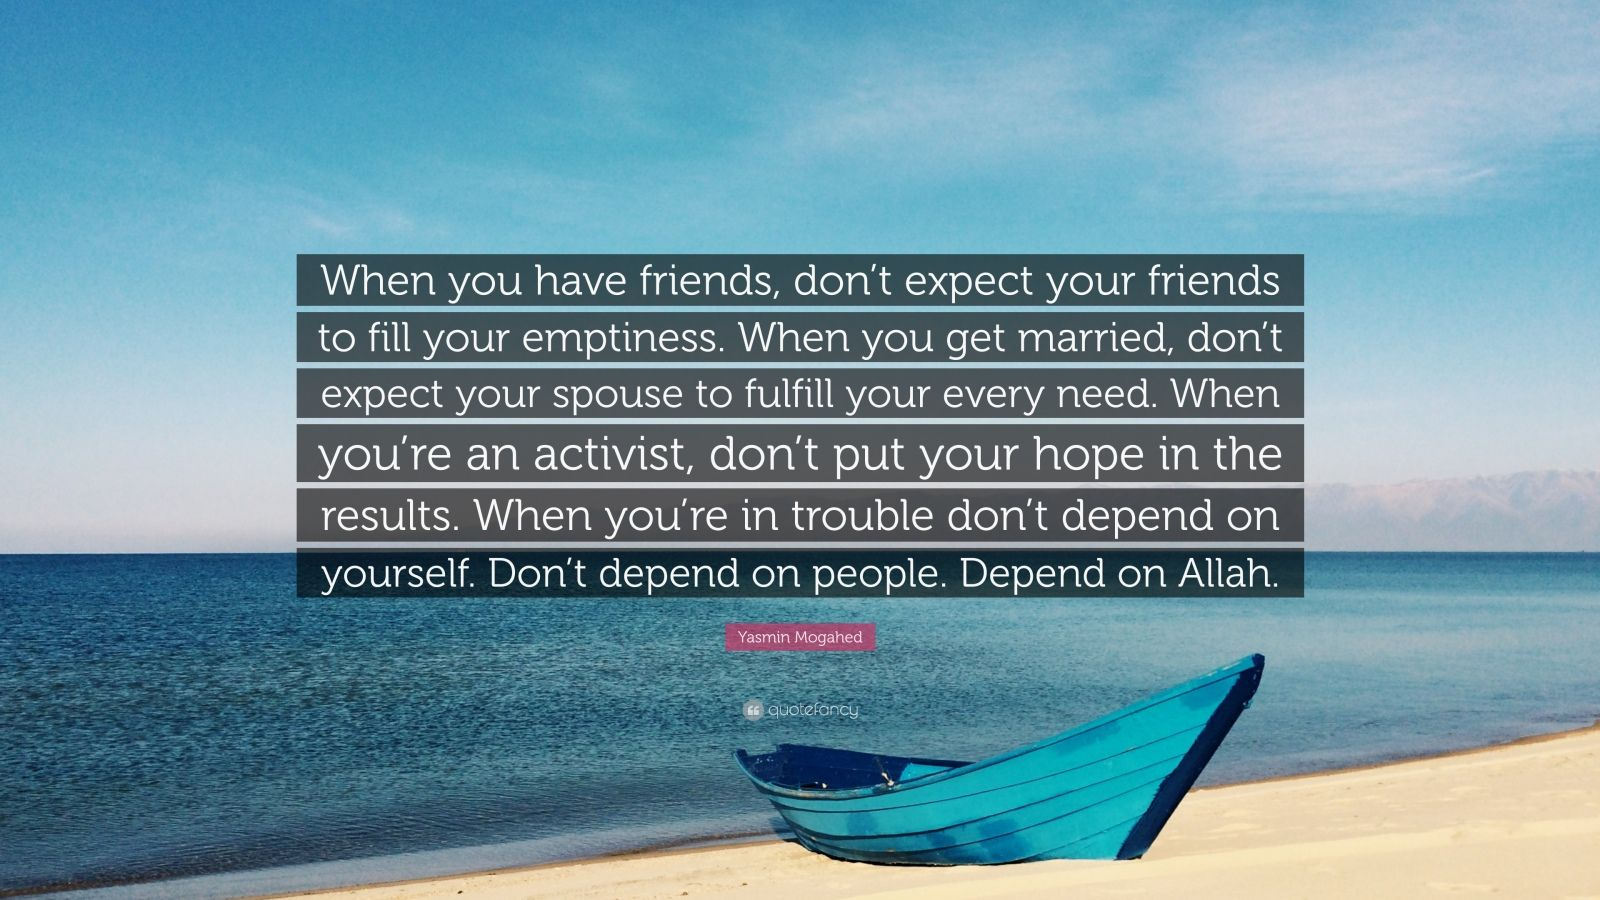 """Yasmin Mogahed Quote: """"When you have friends, don't expect your friends to fill your emptiness. When you get married, don't expect your spouse to fulfill your every need. When you're an activist, don't put your hope in the results. When you're in trouble don't depend on yourself. Don't depend on people. Depend on Allah."""""""